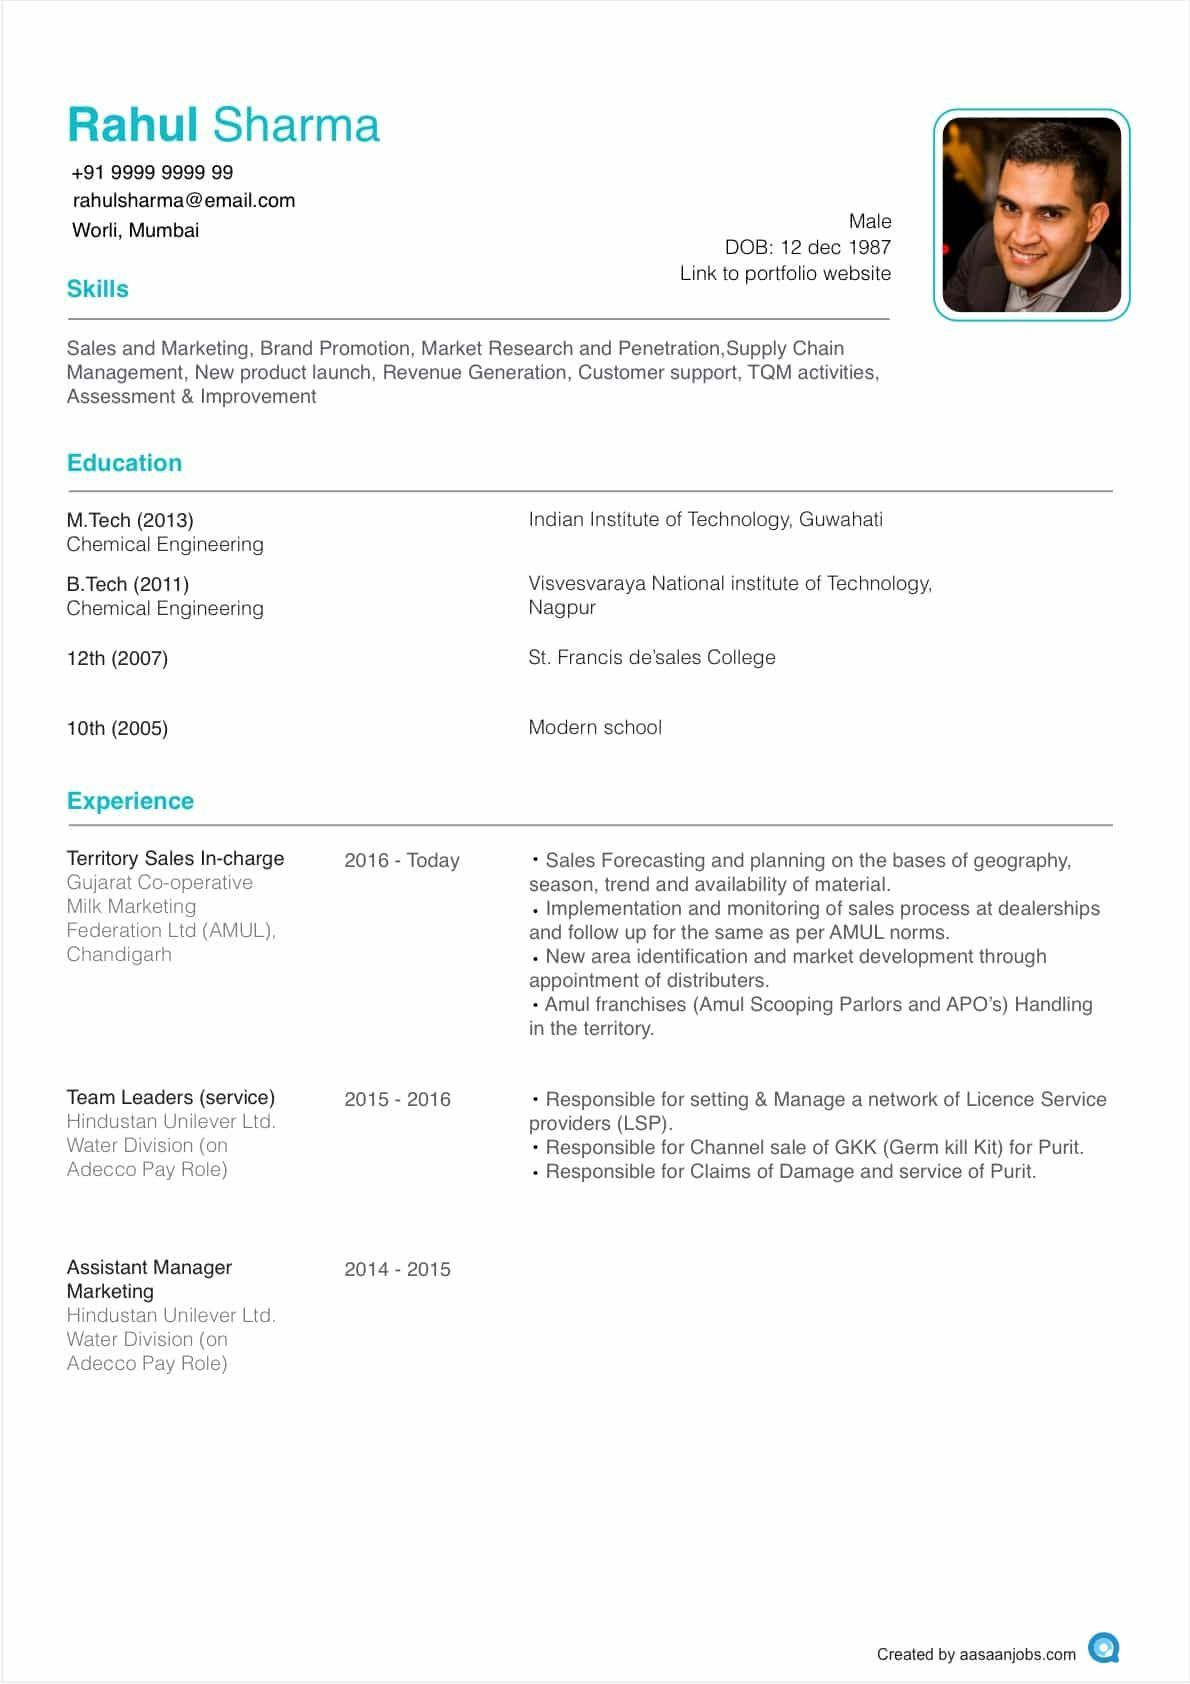 Subtle Resume Format Resume format, Job resume samples